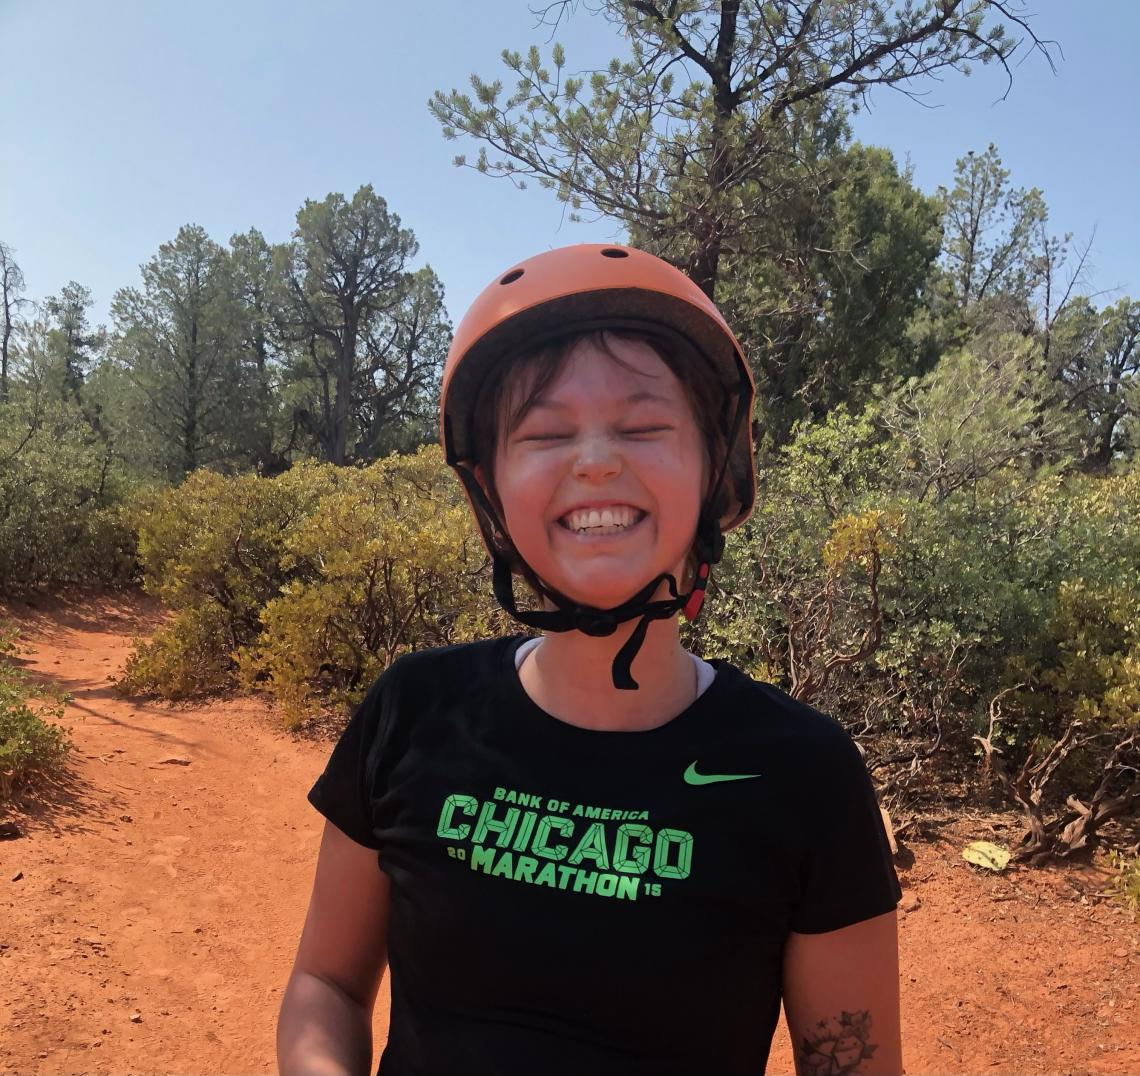 Peyton Smith smiling on a Sedona mountain bike trail